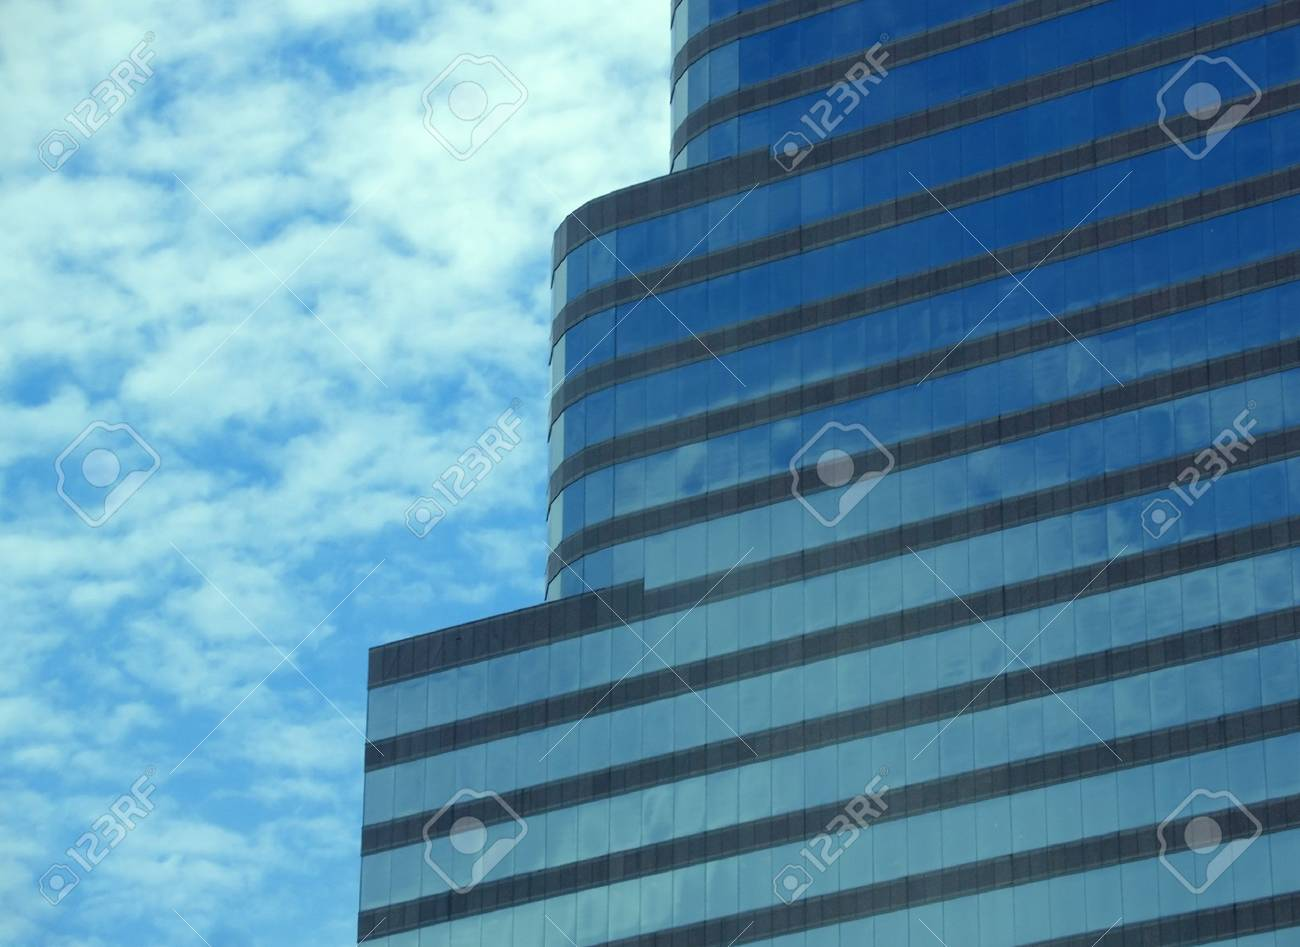 Striped blue glass skyscraper in Miami, Florida Stock Photo - 1335147